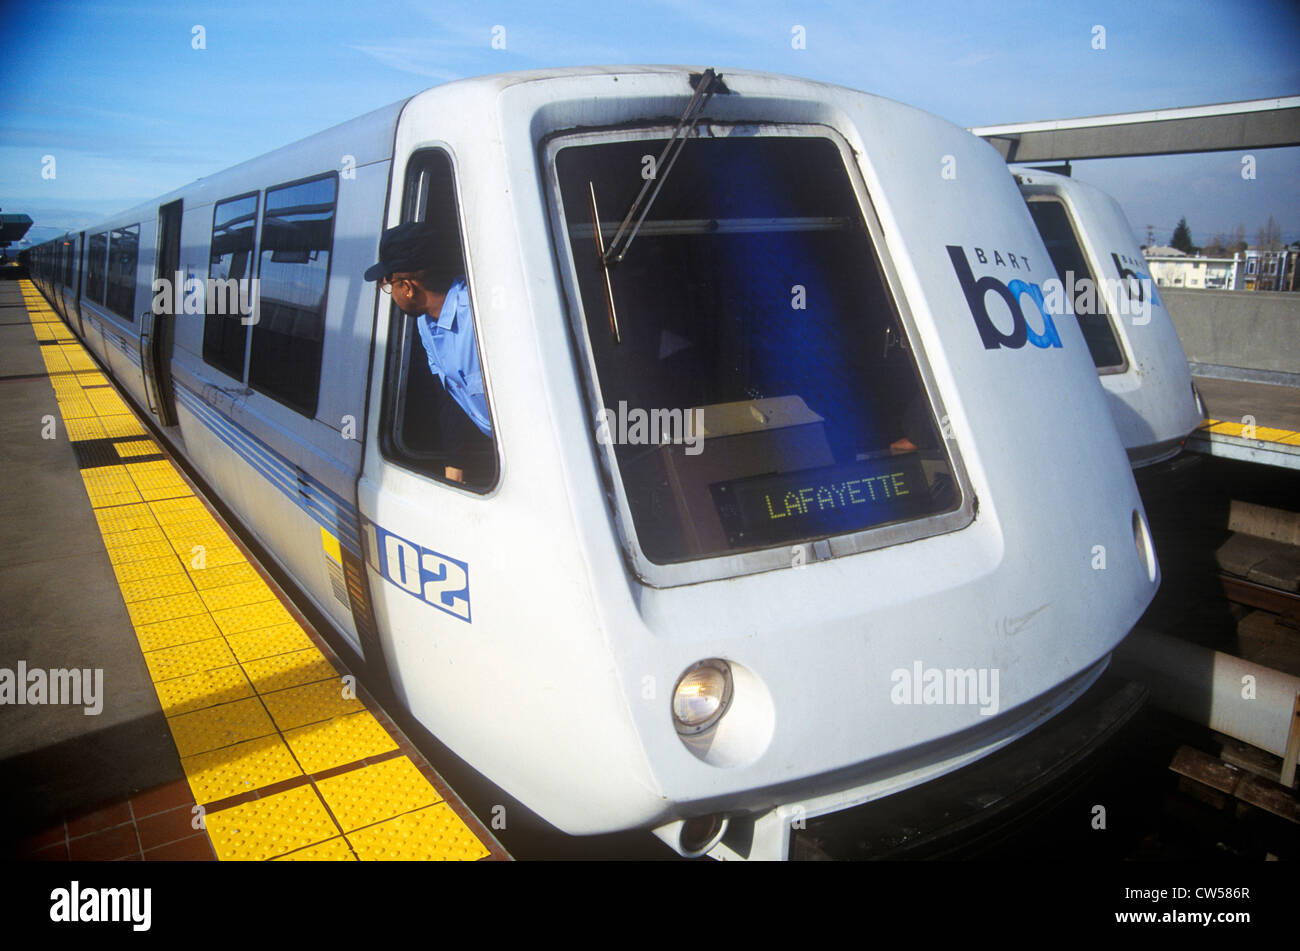 The San Francisco Bay Area Rapid Transit train, commonly referred to as BART, carries commuters to its next destination - Stock Image